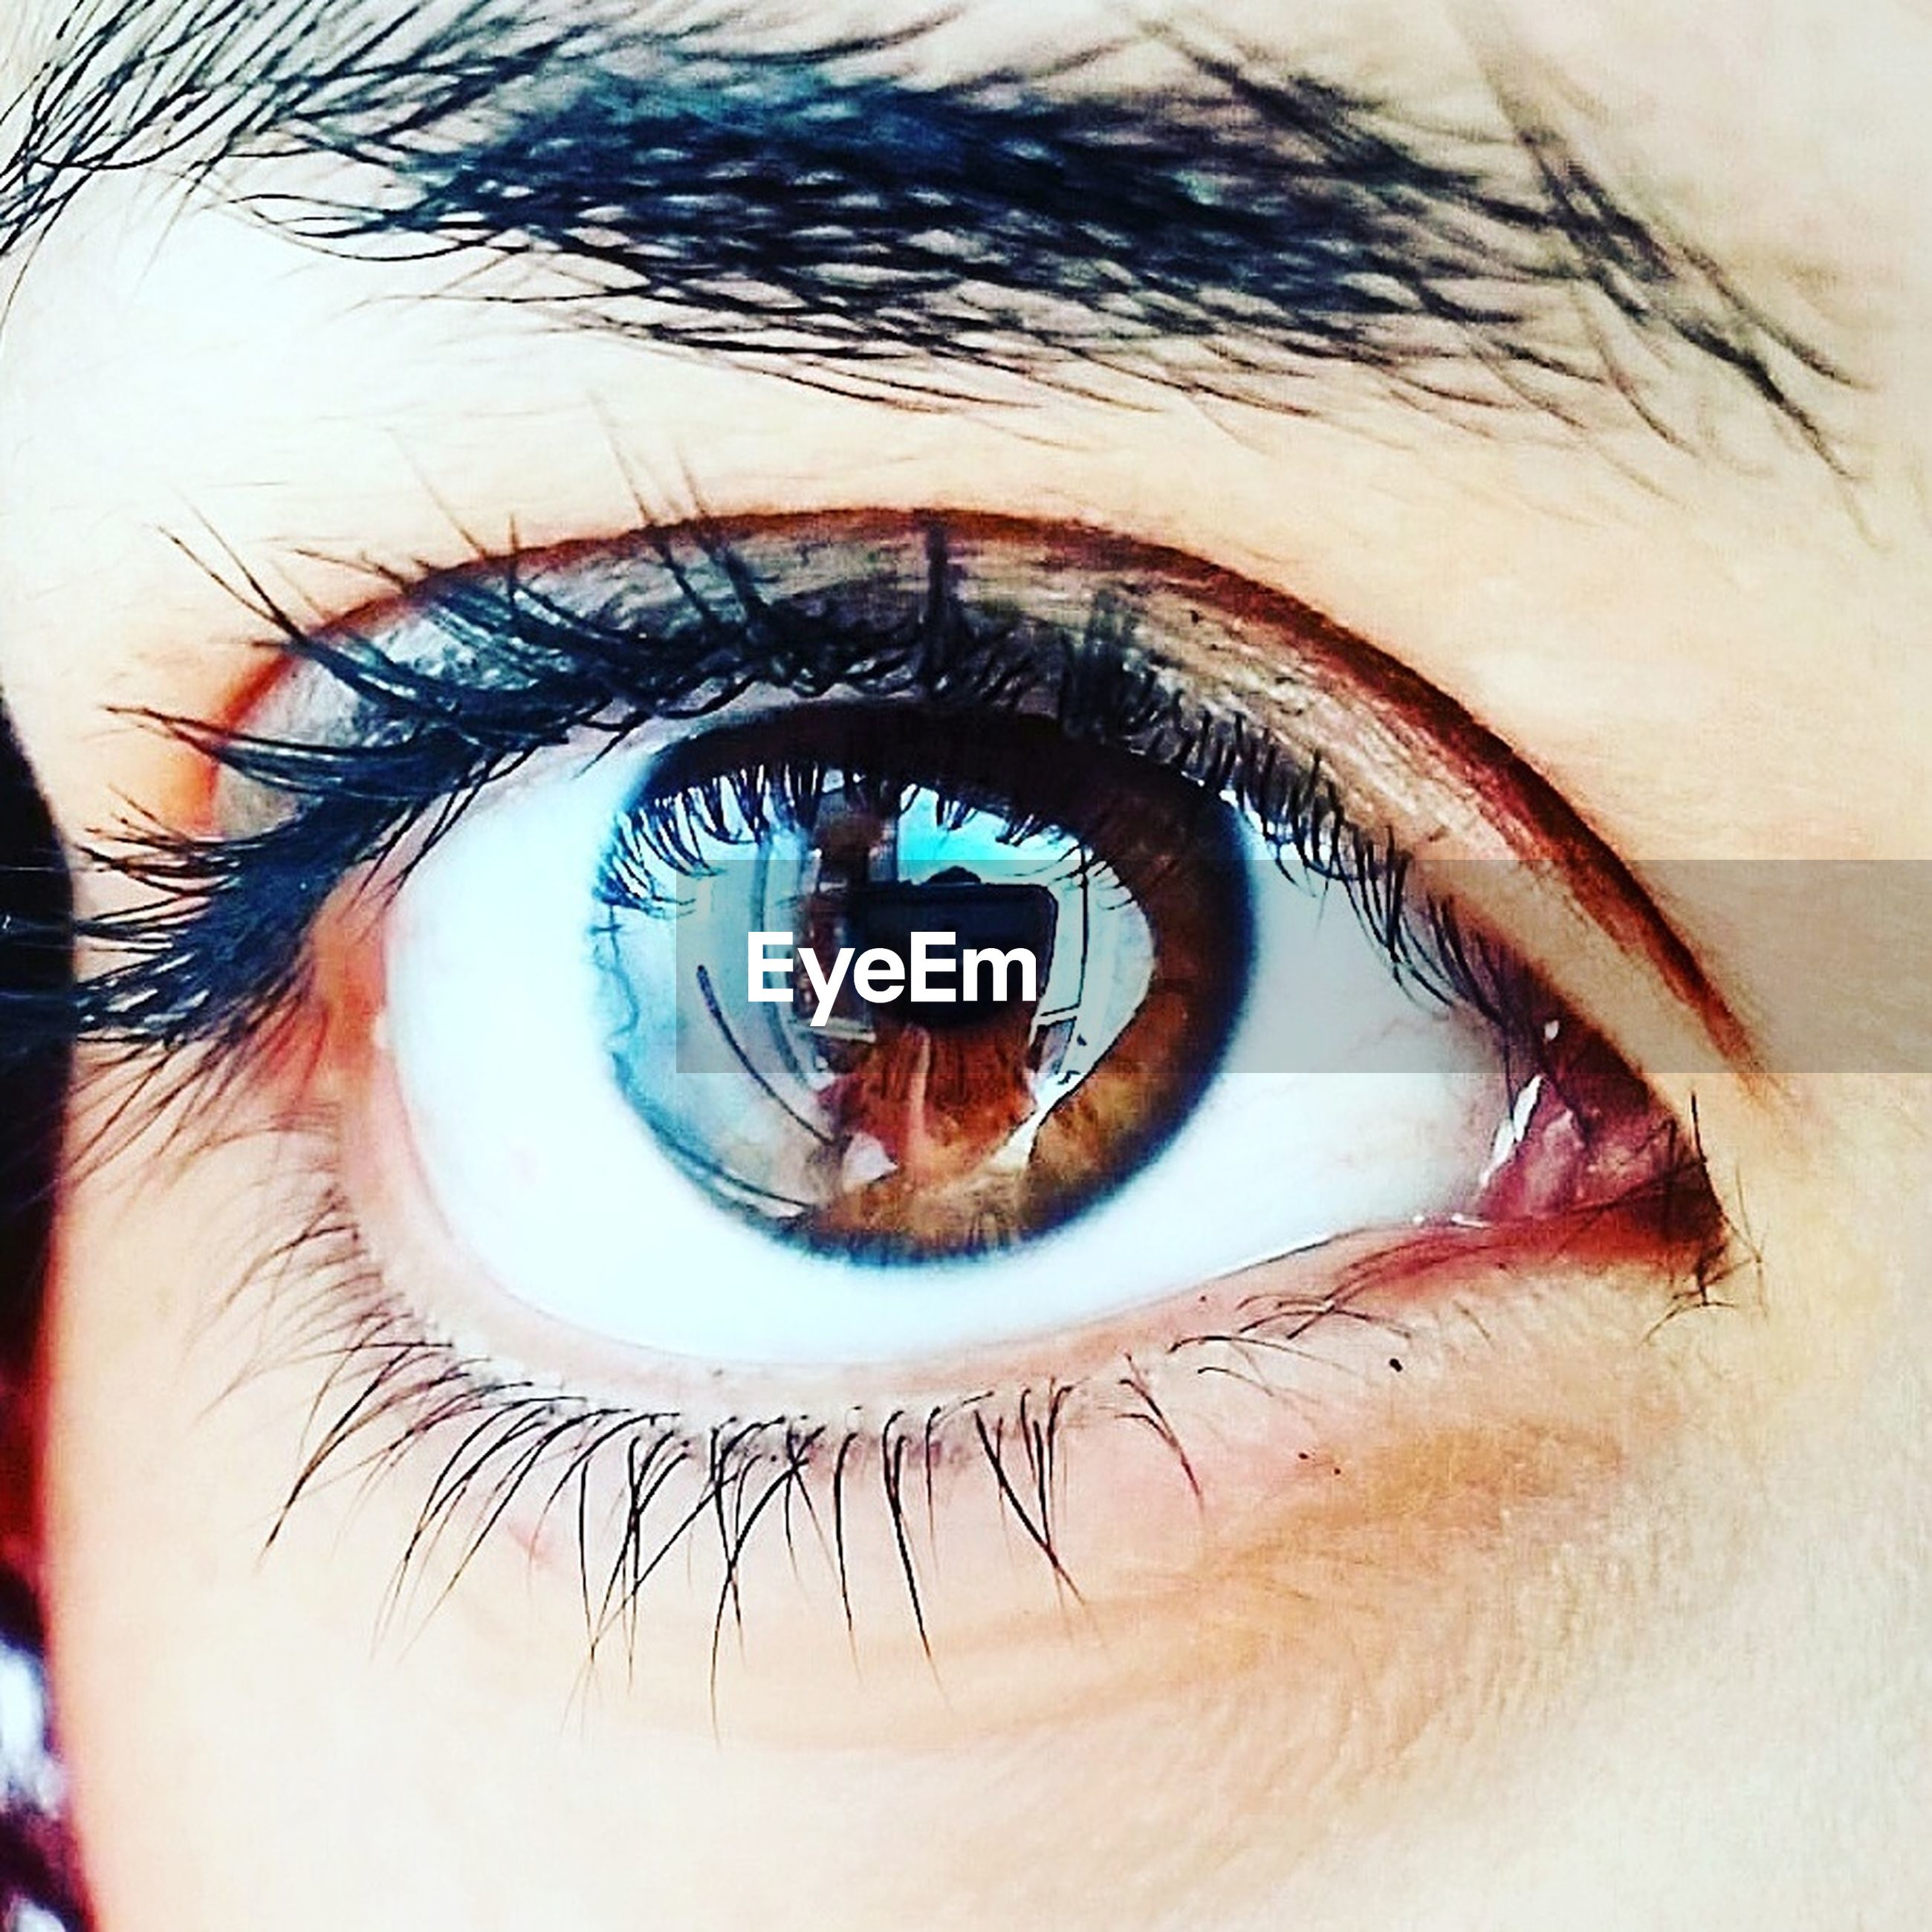 human eye, eyelash, human body part, eyesight, sensory perception, real people, eyeball, looking at camera, iris - eye, close-up, one person, macro, portrait, vision, eyelid, iris, day, outdoors, eyebrow, people